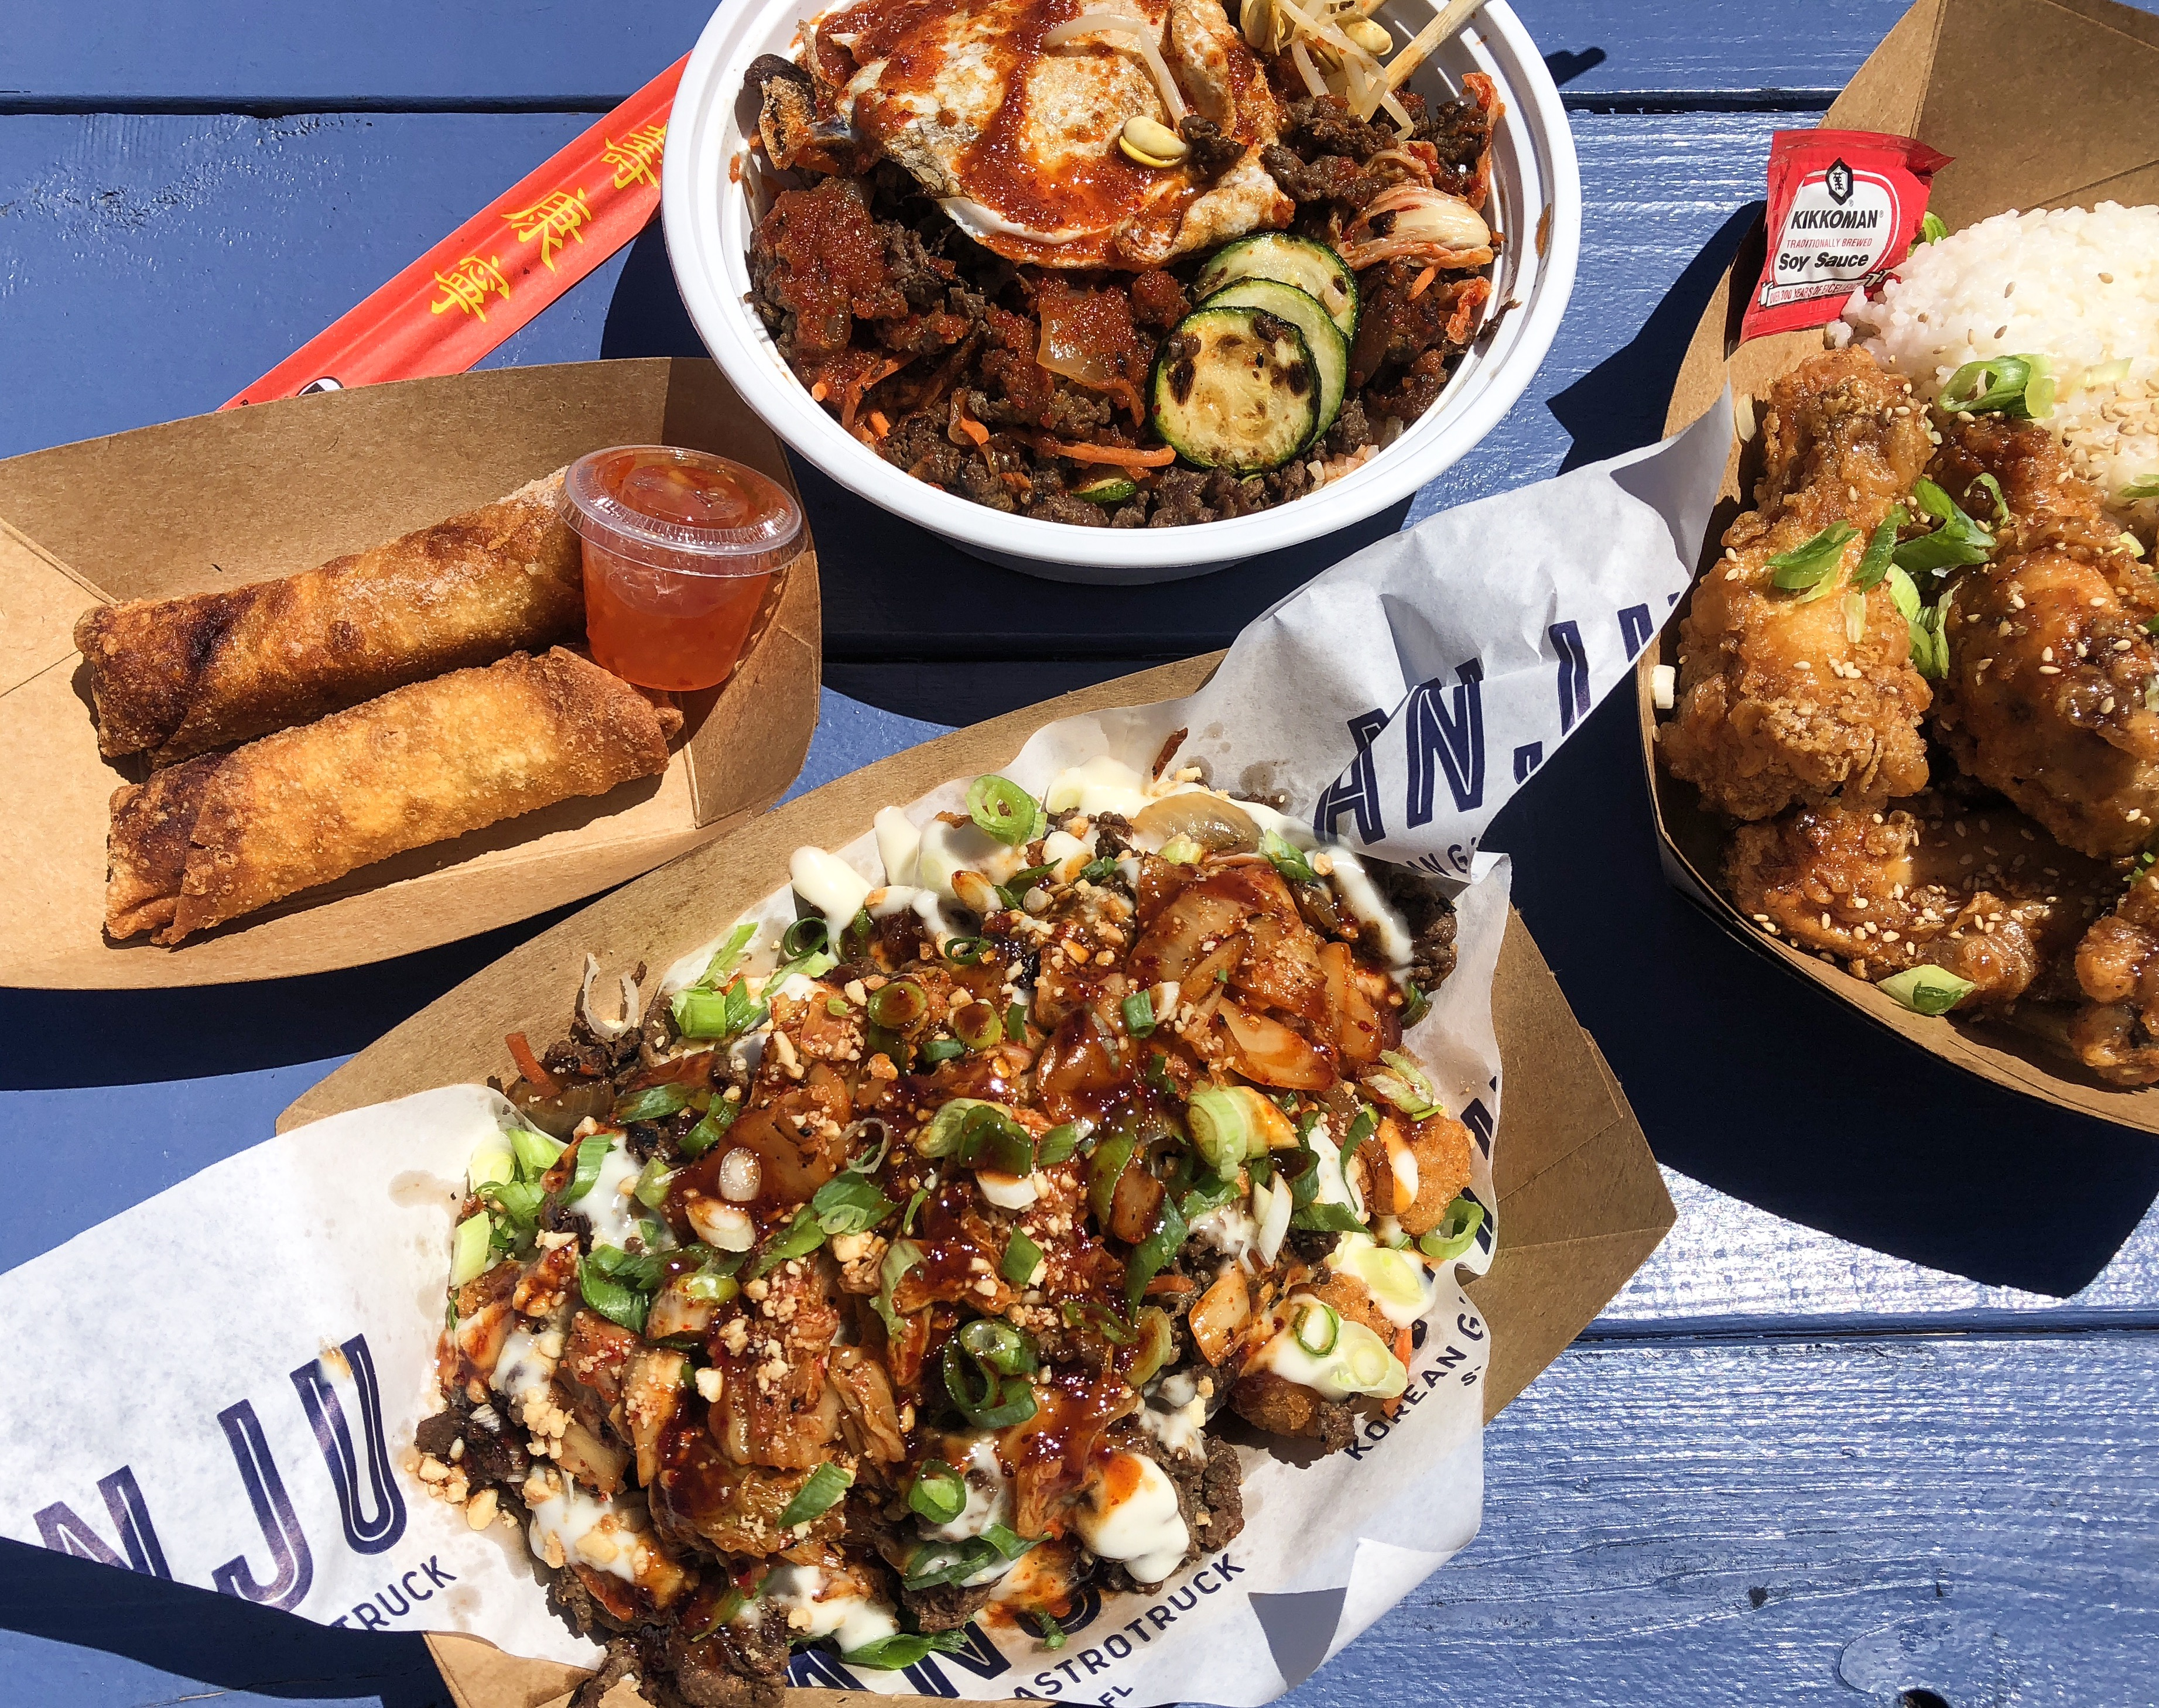 Bop Bowl, K.F.C., K Town, and Pork Egg Rolls